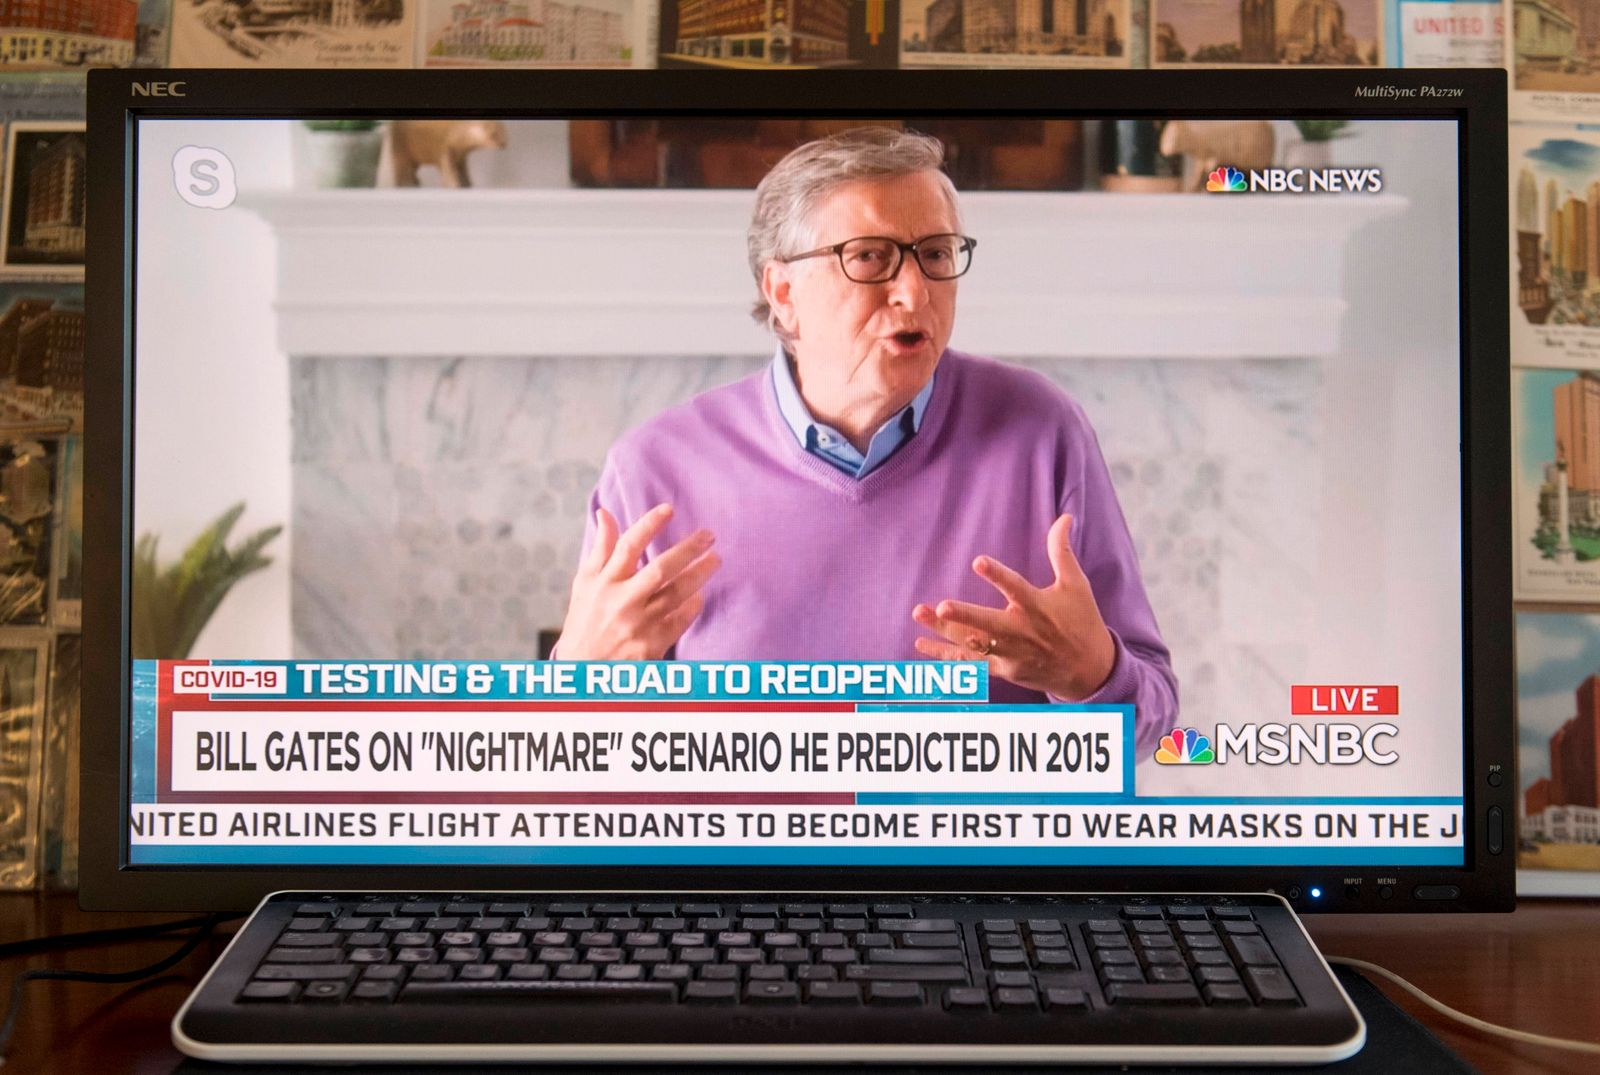 Coronavirus in den USA, Bill Gates im TV Interview April 23, 2020 - New York, New York - U.S. - A screen grab of a NBC s